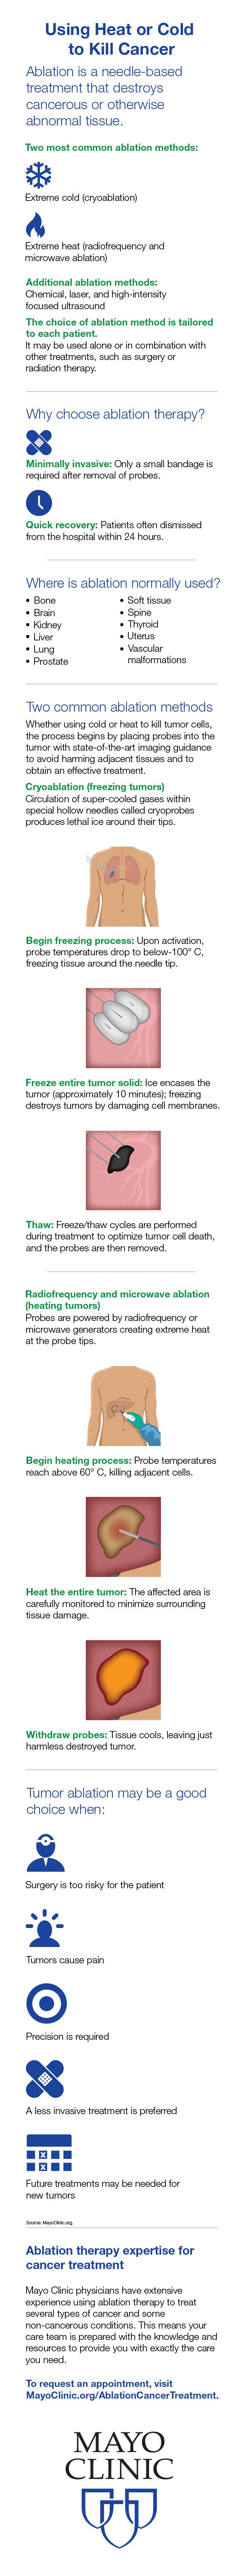 Infographic: Minimally invasive pancreatic cancer surgery